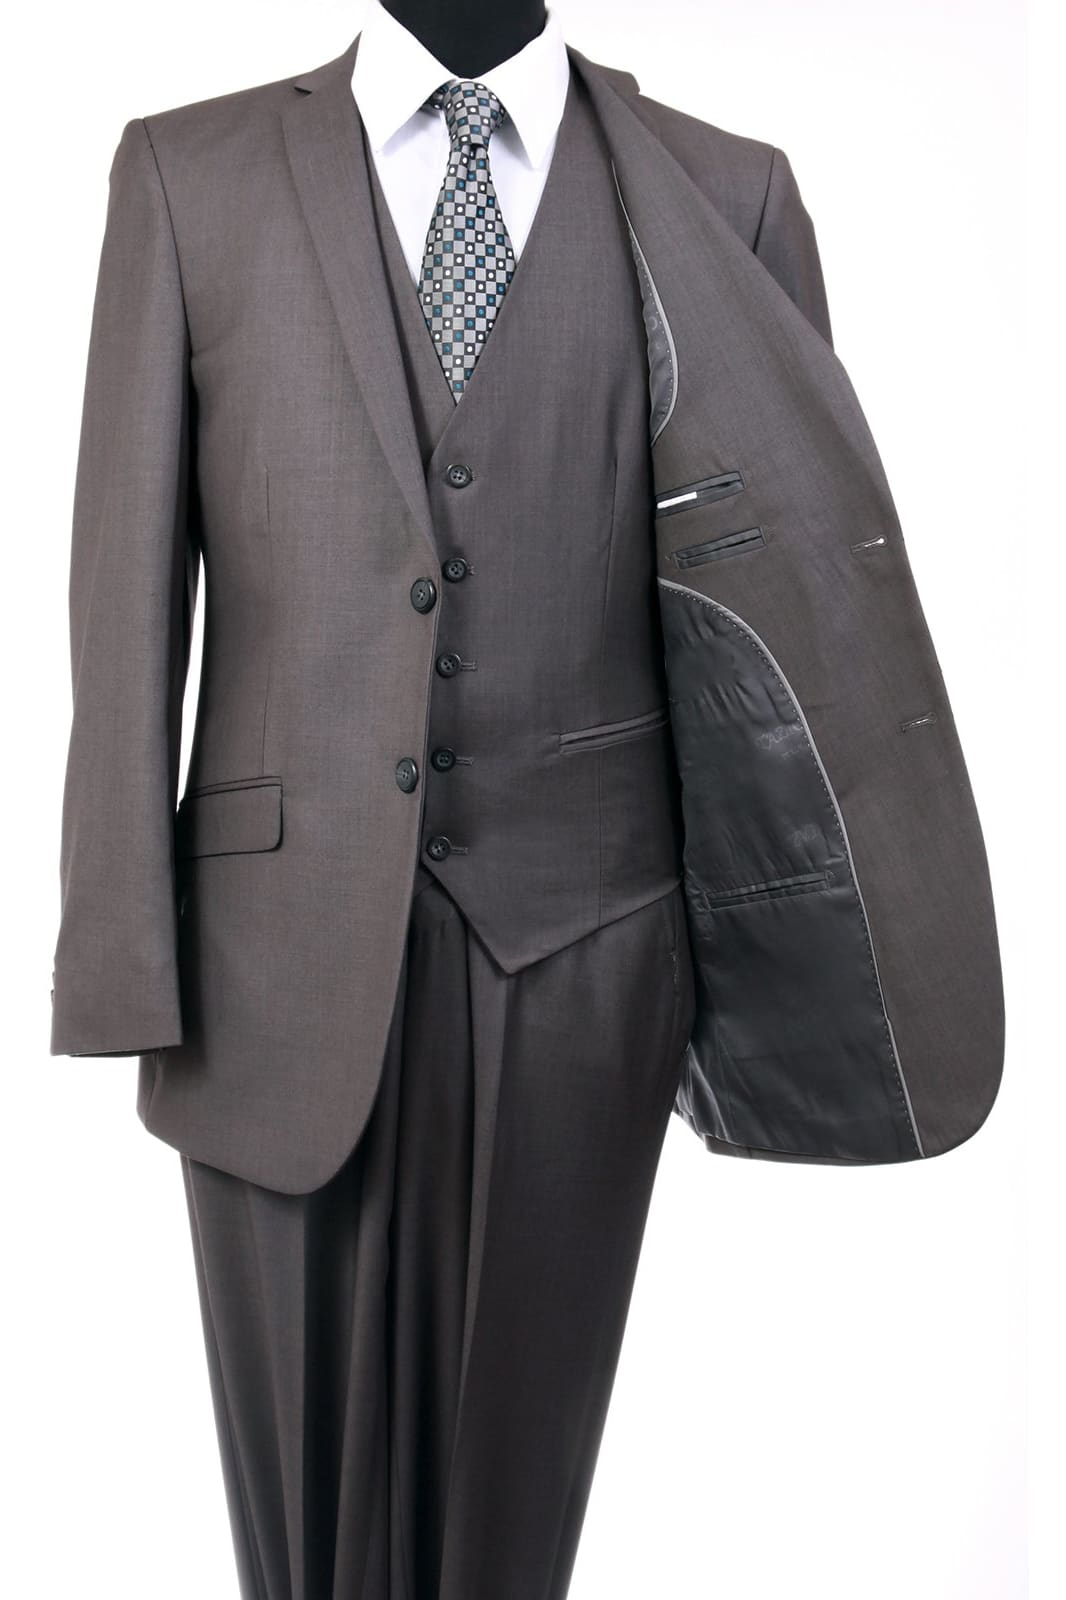 Ultra Slim Fit 3 Piece Men's Suit - LA154SA - MID GREY /